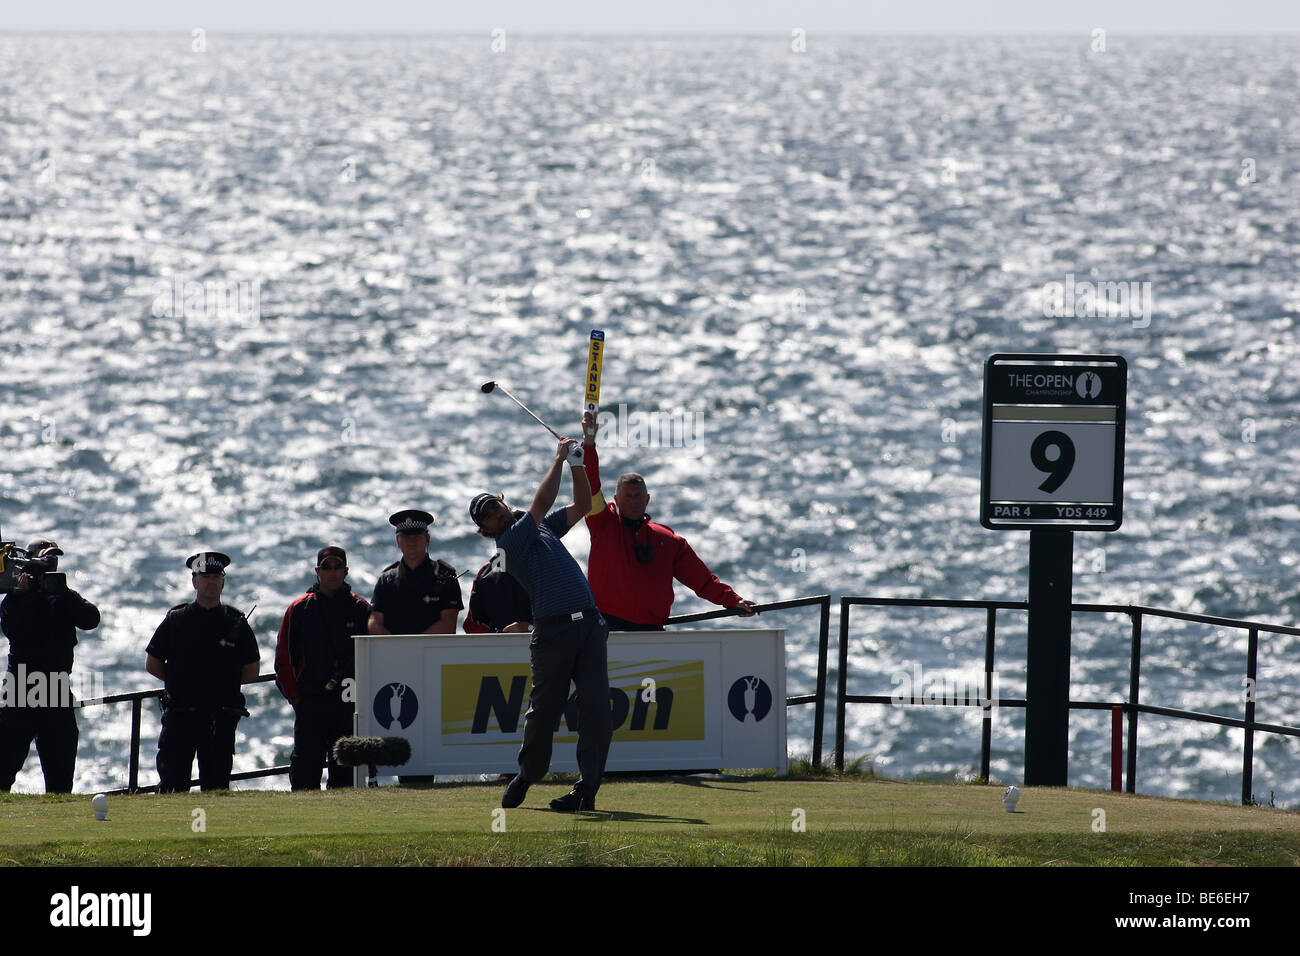 MATTHEW GOGGIN DRIVES HE 9TH THE OPEN TURNBERRY 2009 TURNBERRY AYRSHIRE SCOTLAND 19 July 2009 - Stock Image